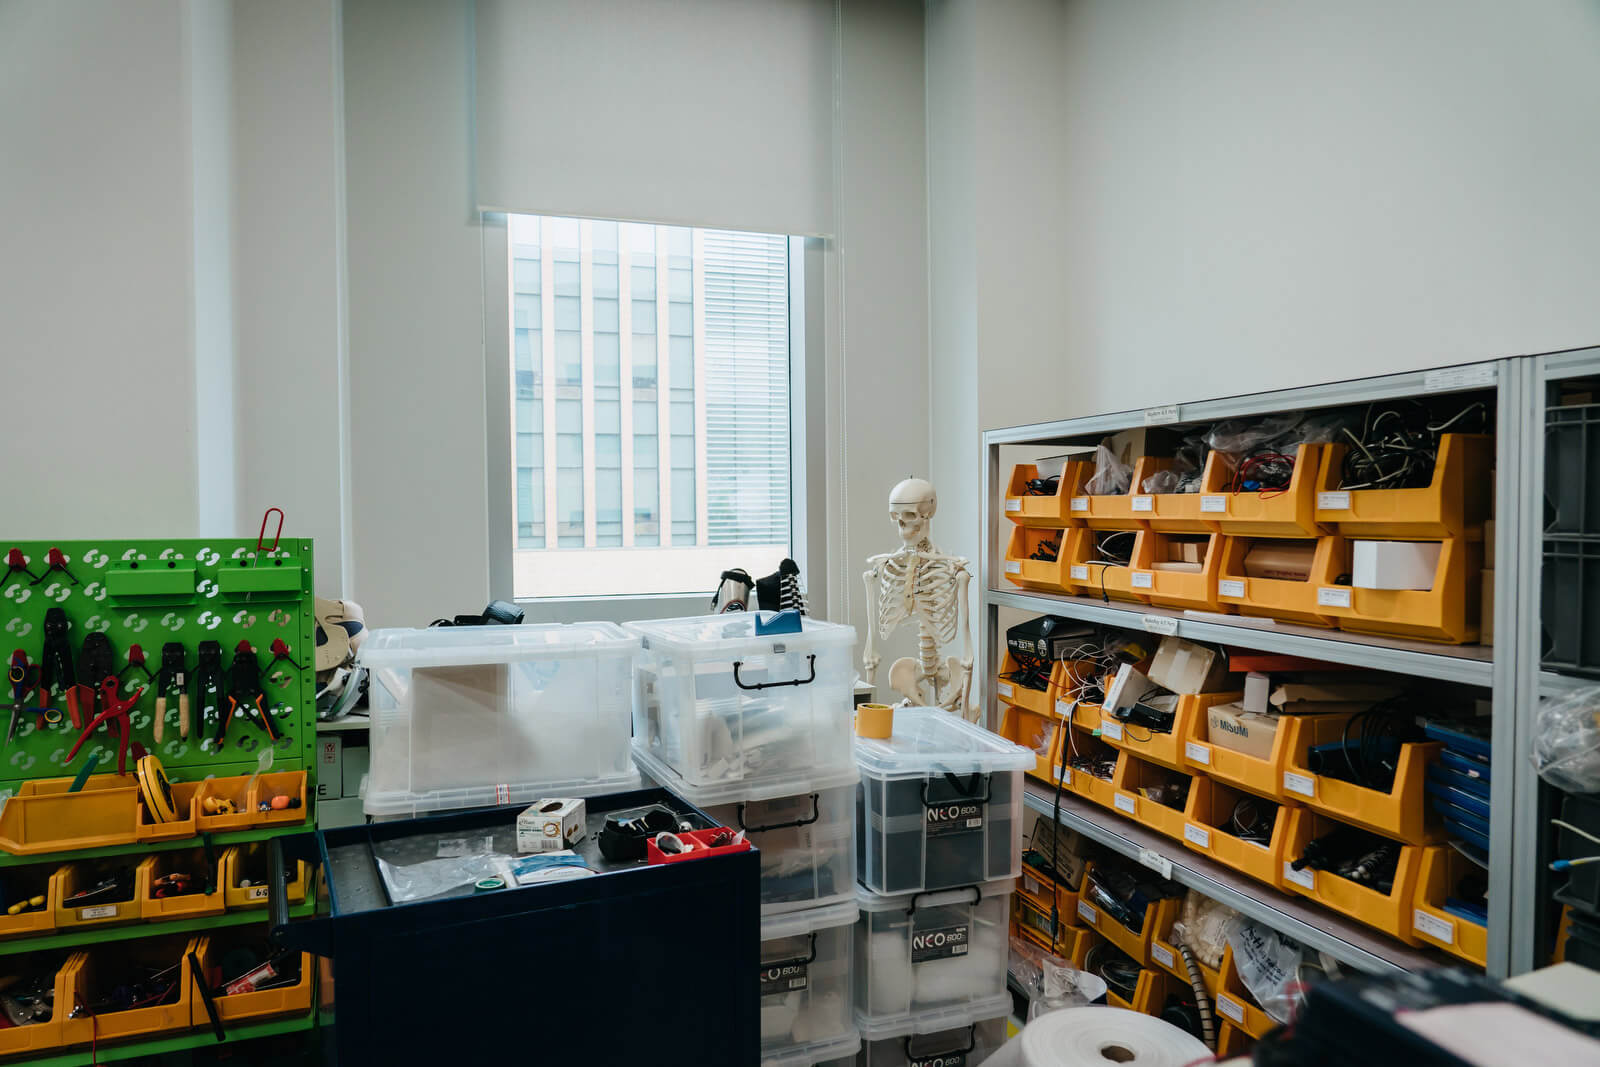 An anatomical model sits inside the storage area of the GEMS Lab.